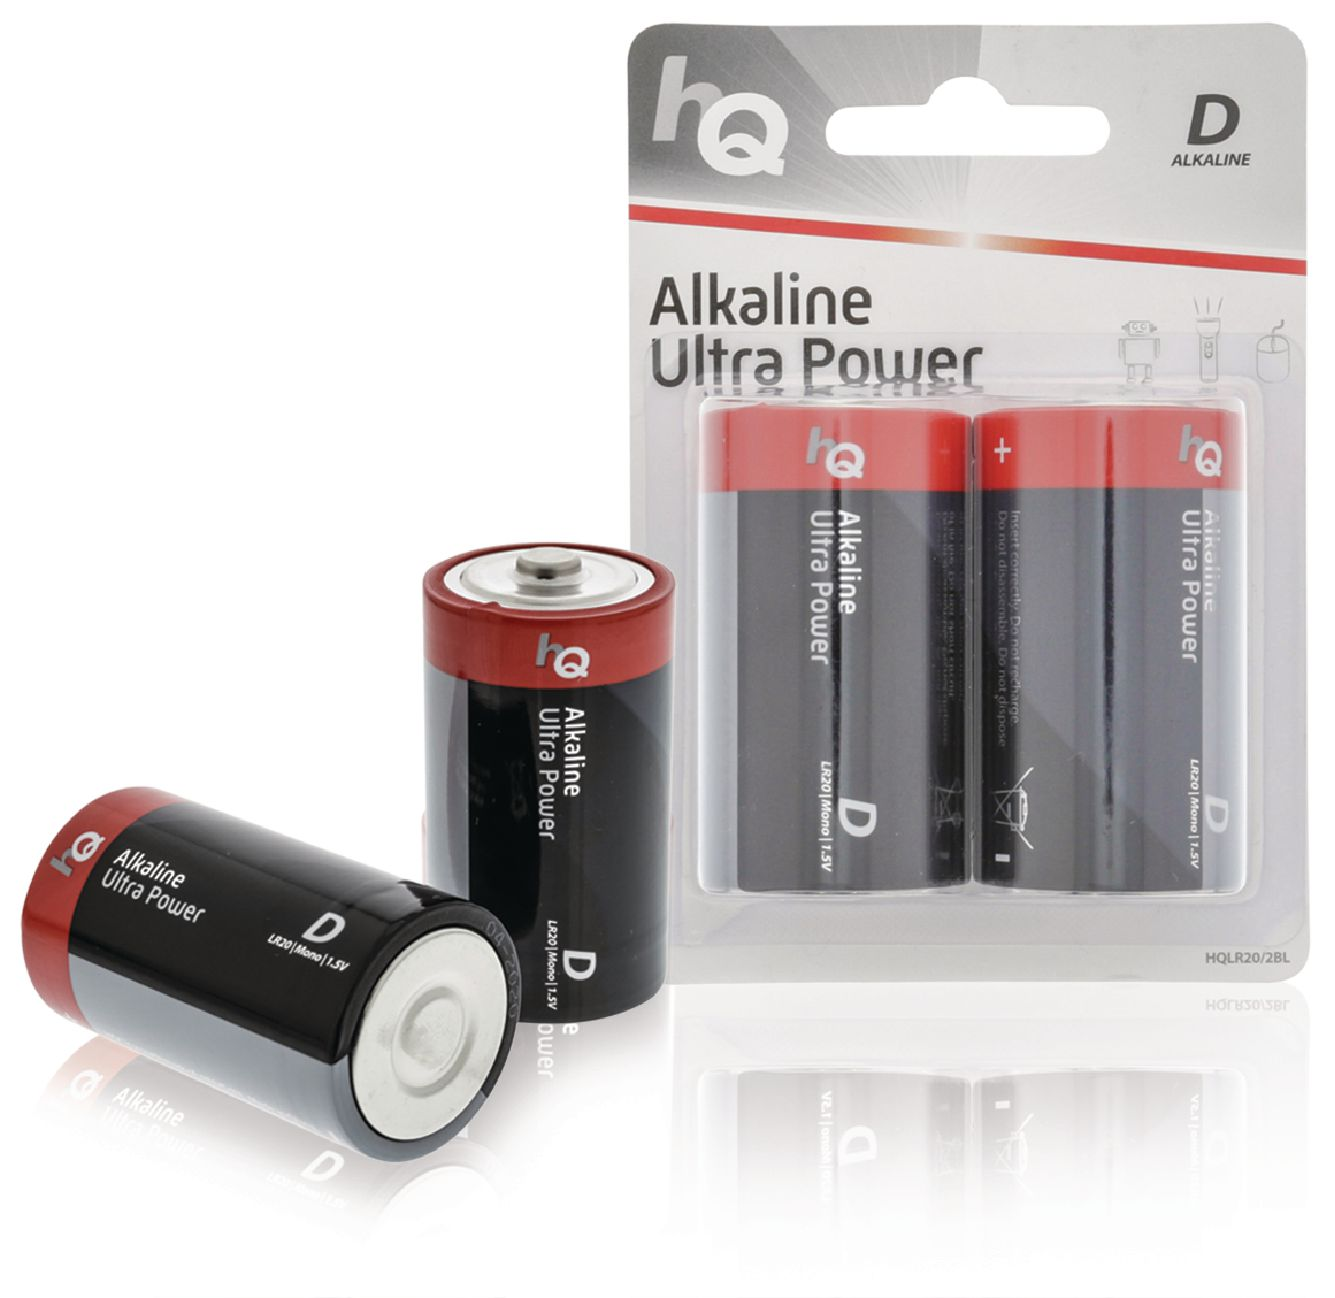 Alkalická baterie HQ Ultra Power LR20 1.5 V, 2ks, HQLR20/2BL